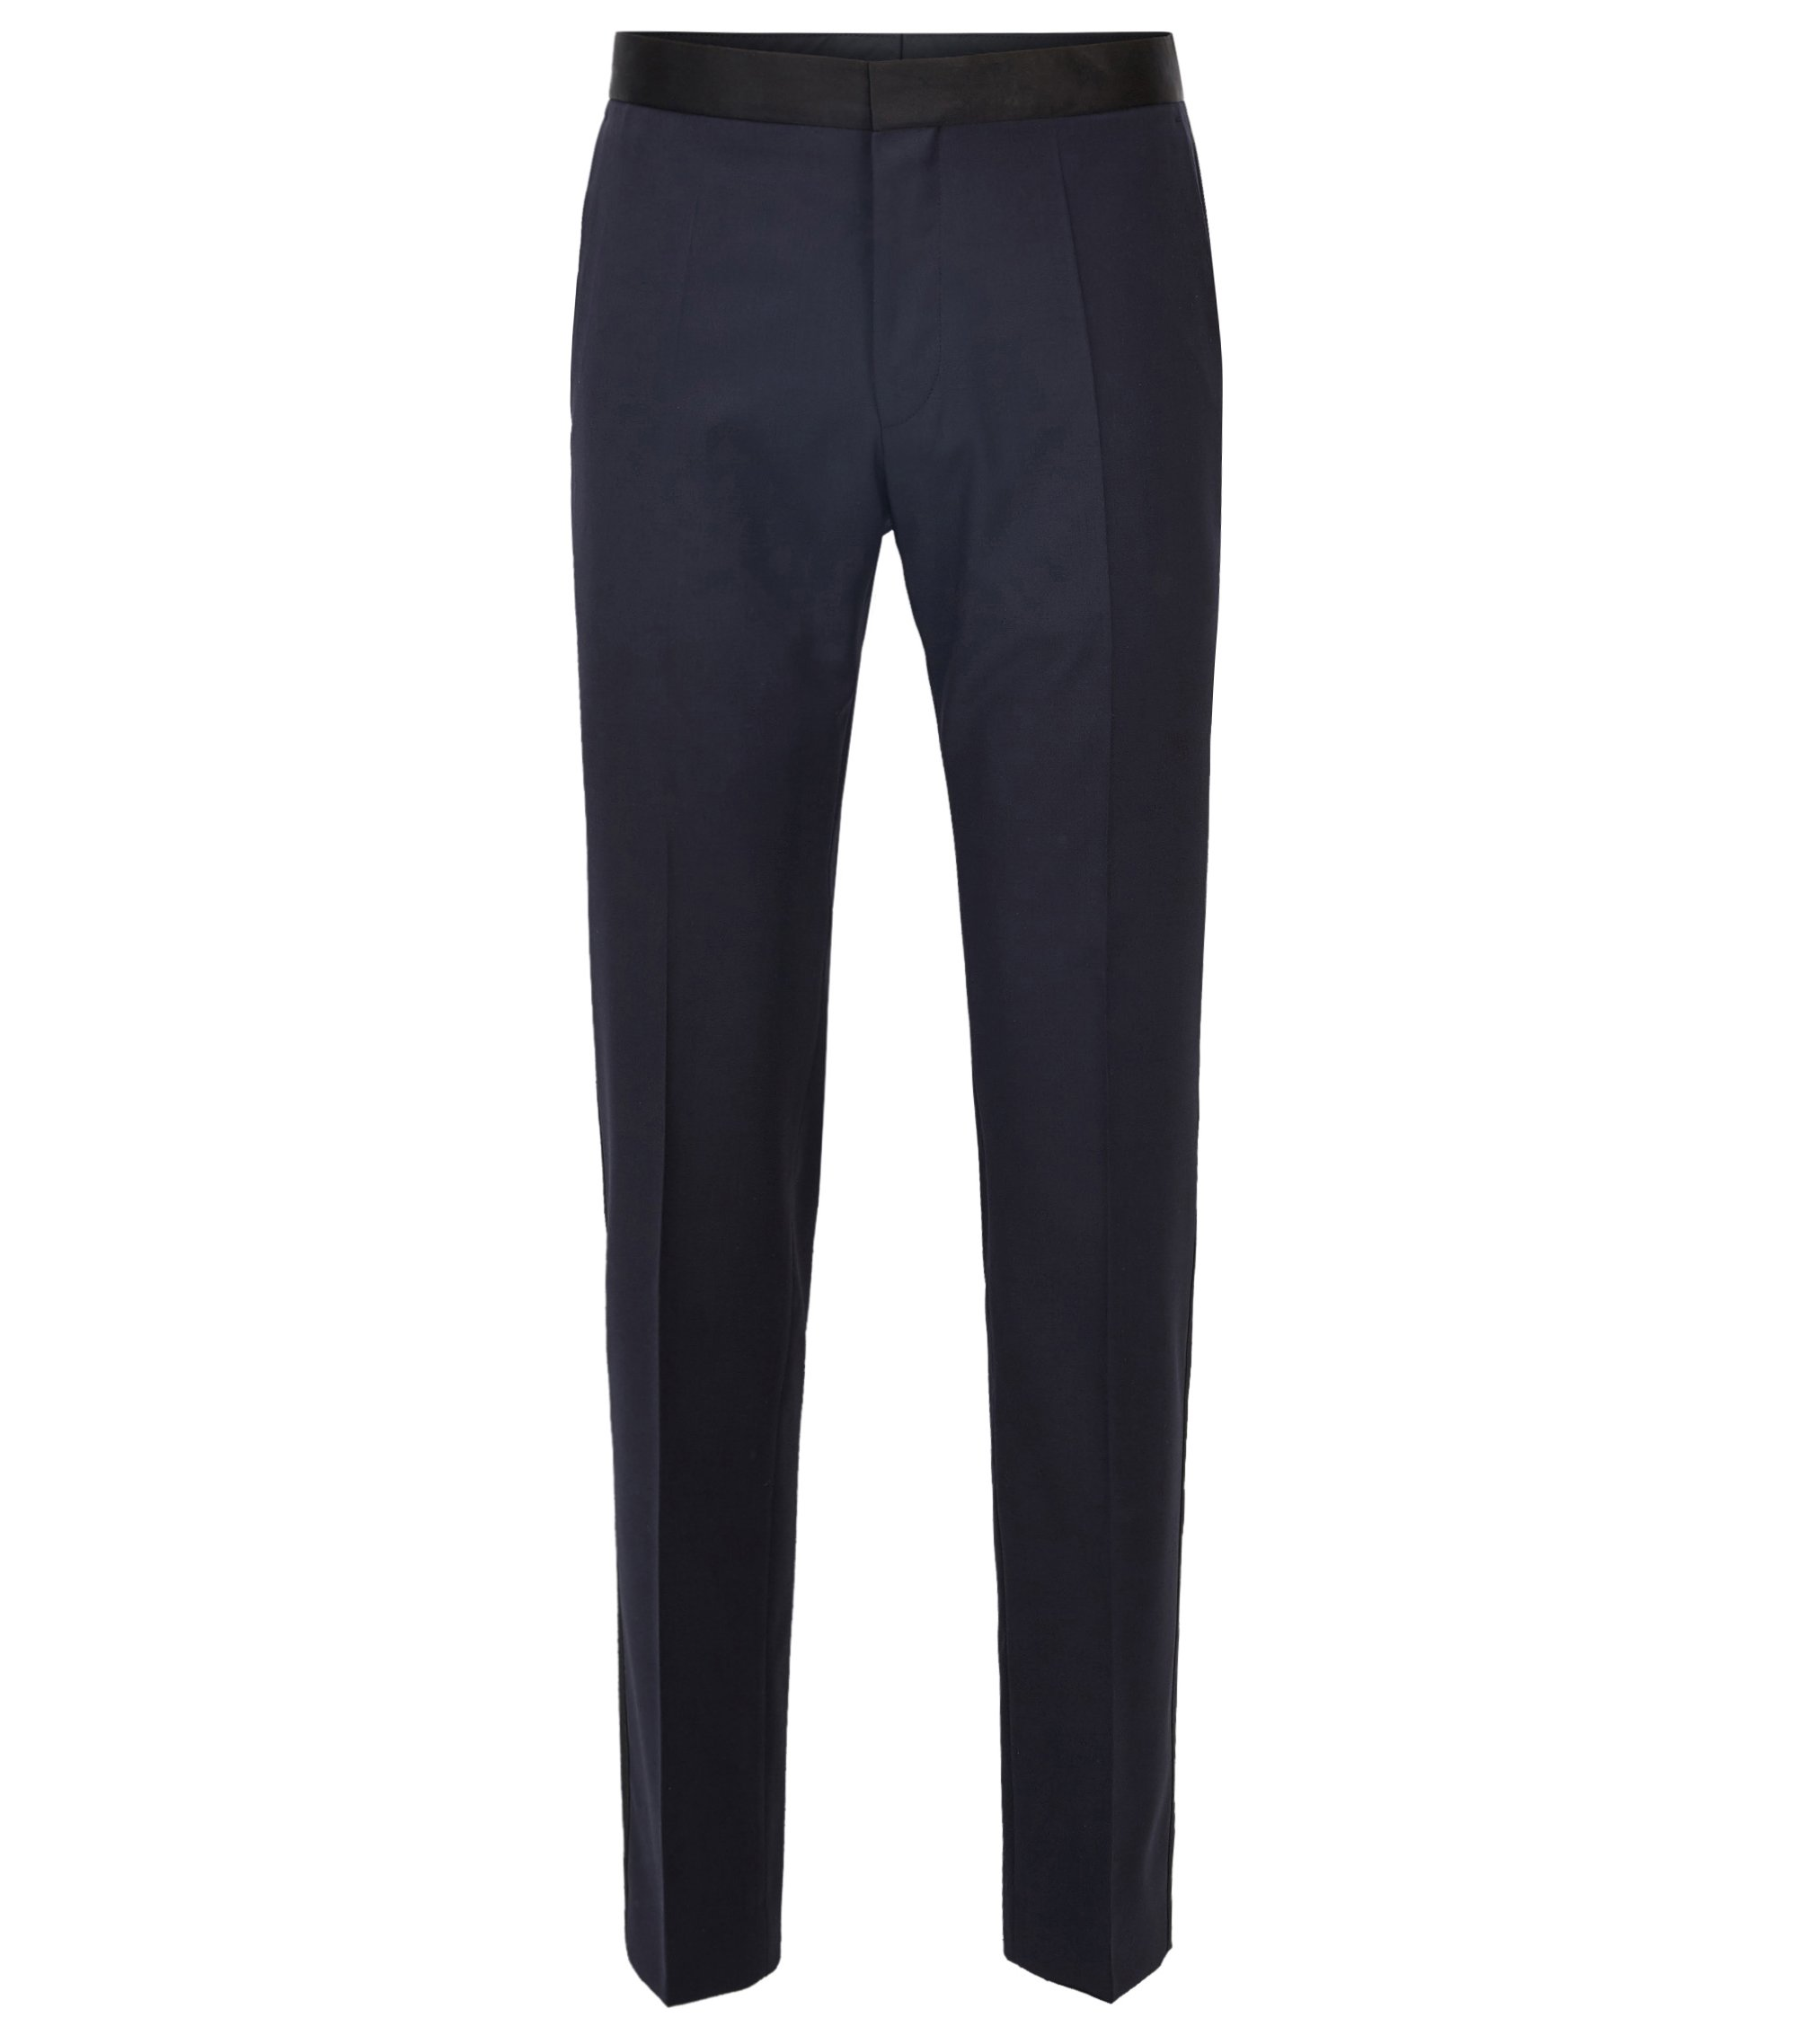 Italian Virgin Wool Pant, Slim Fit | Gilan CYL, Dark Blue